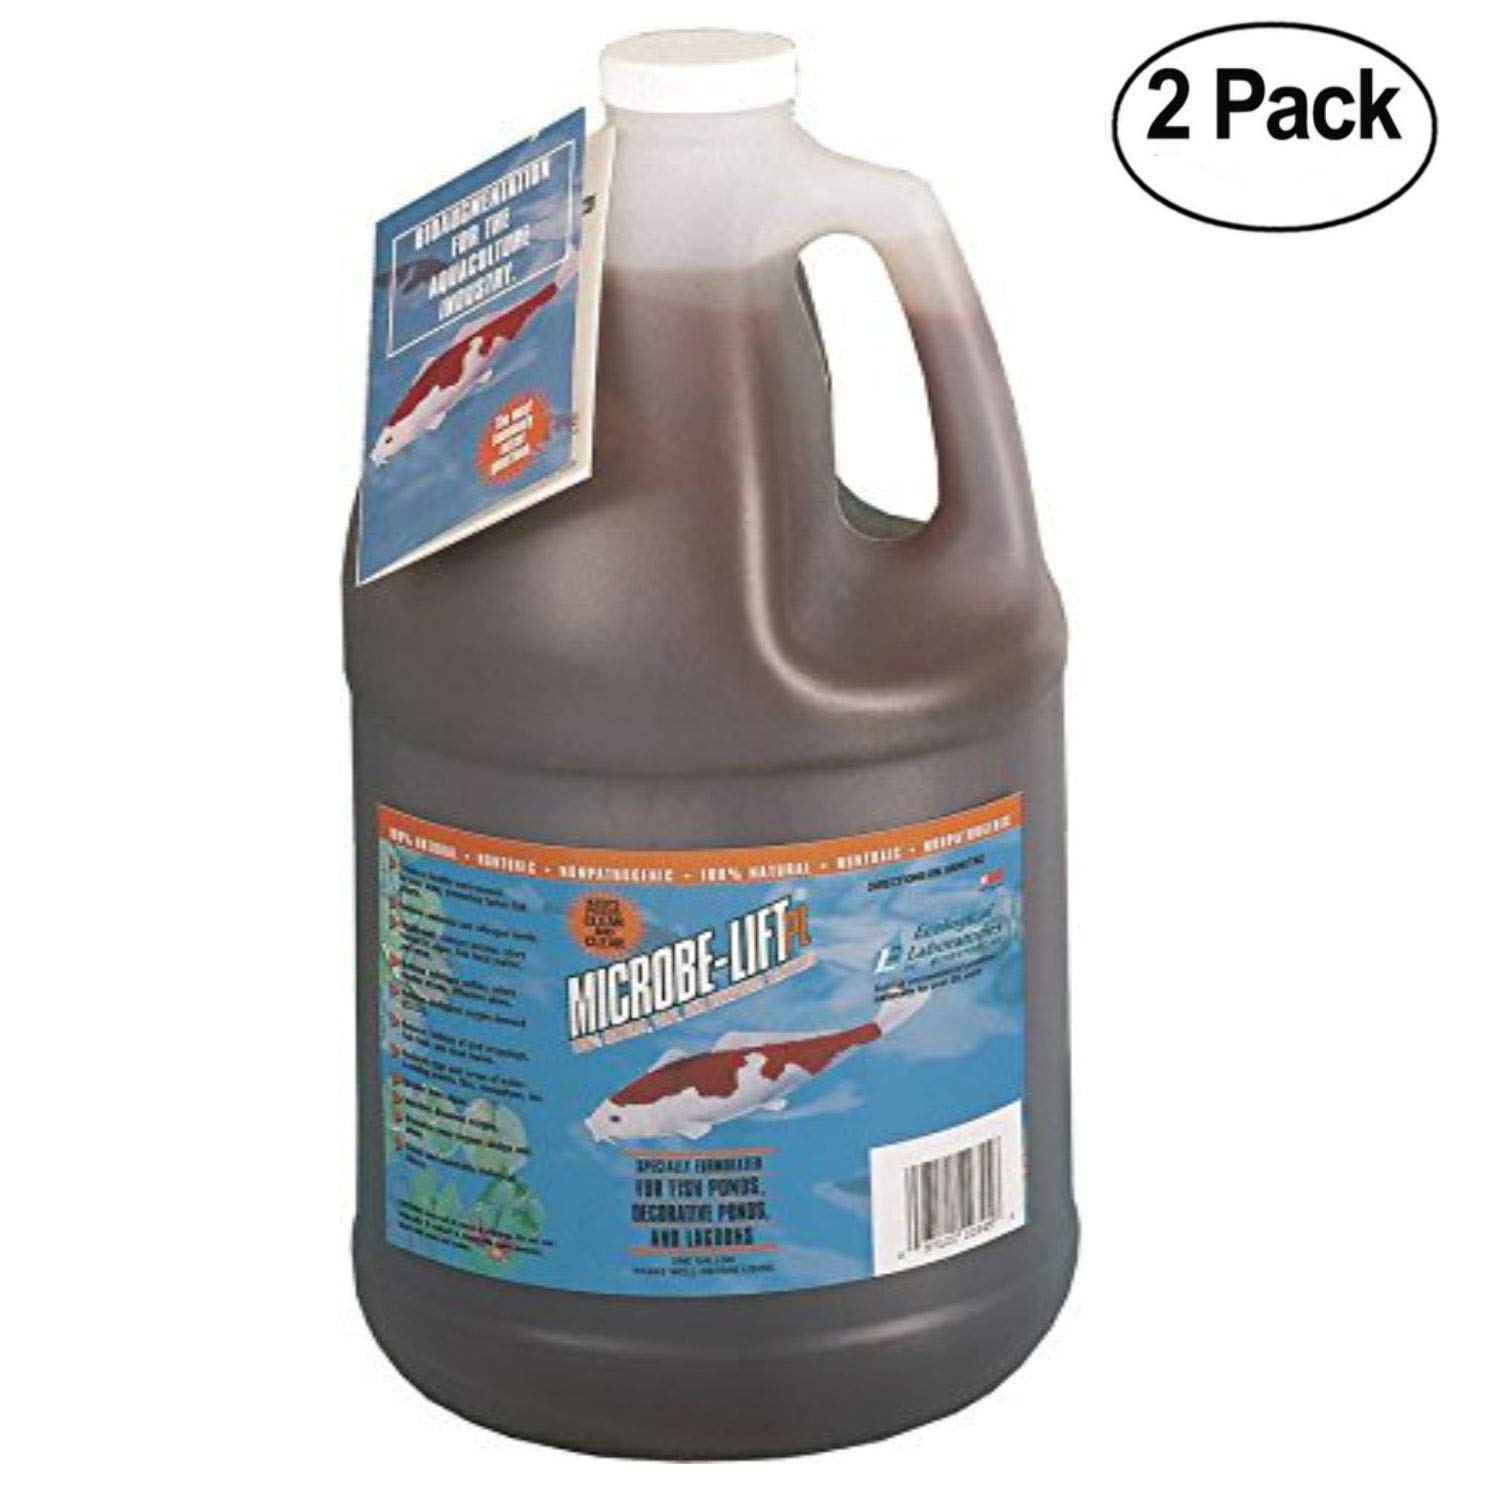 Eco Labs 971047 10PLG4 Microbe Lift PL Bacteria for Watergardens Gallon - 2 Pack